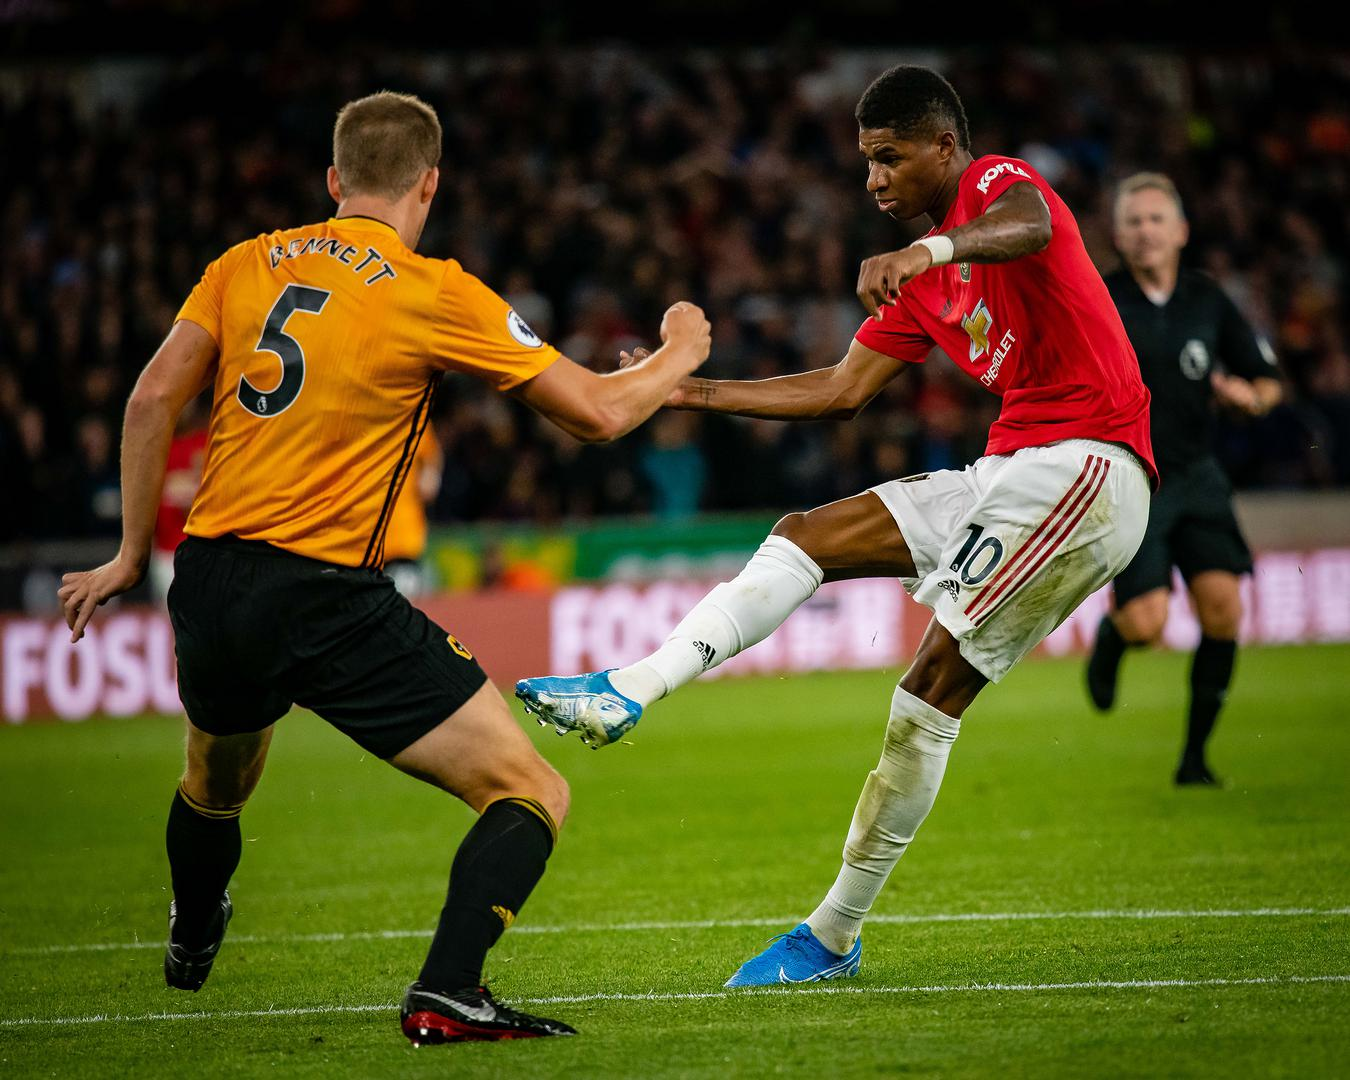 Marcus Rashford in action against Wolves.